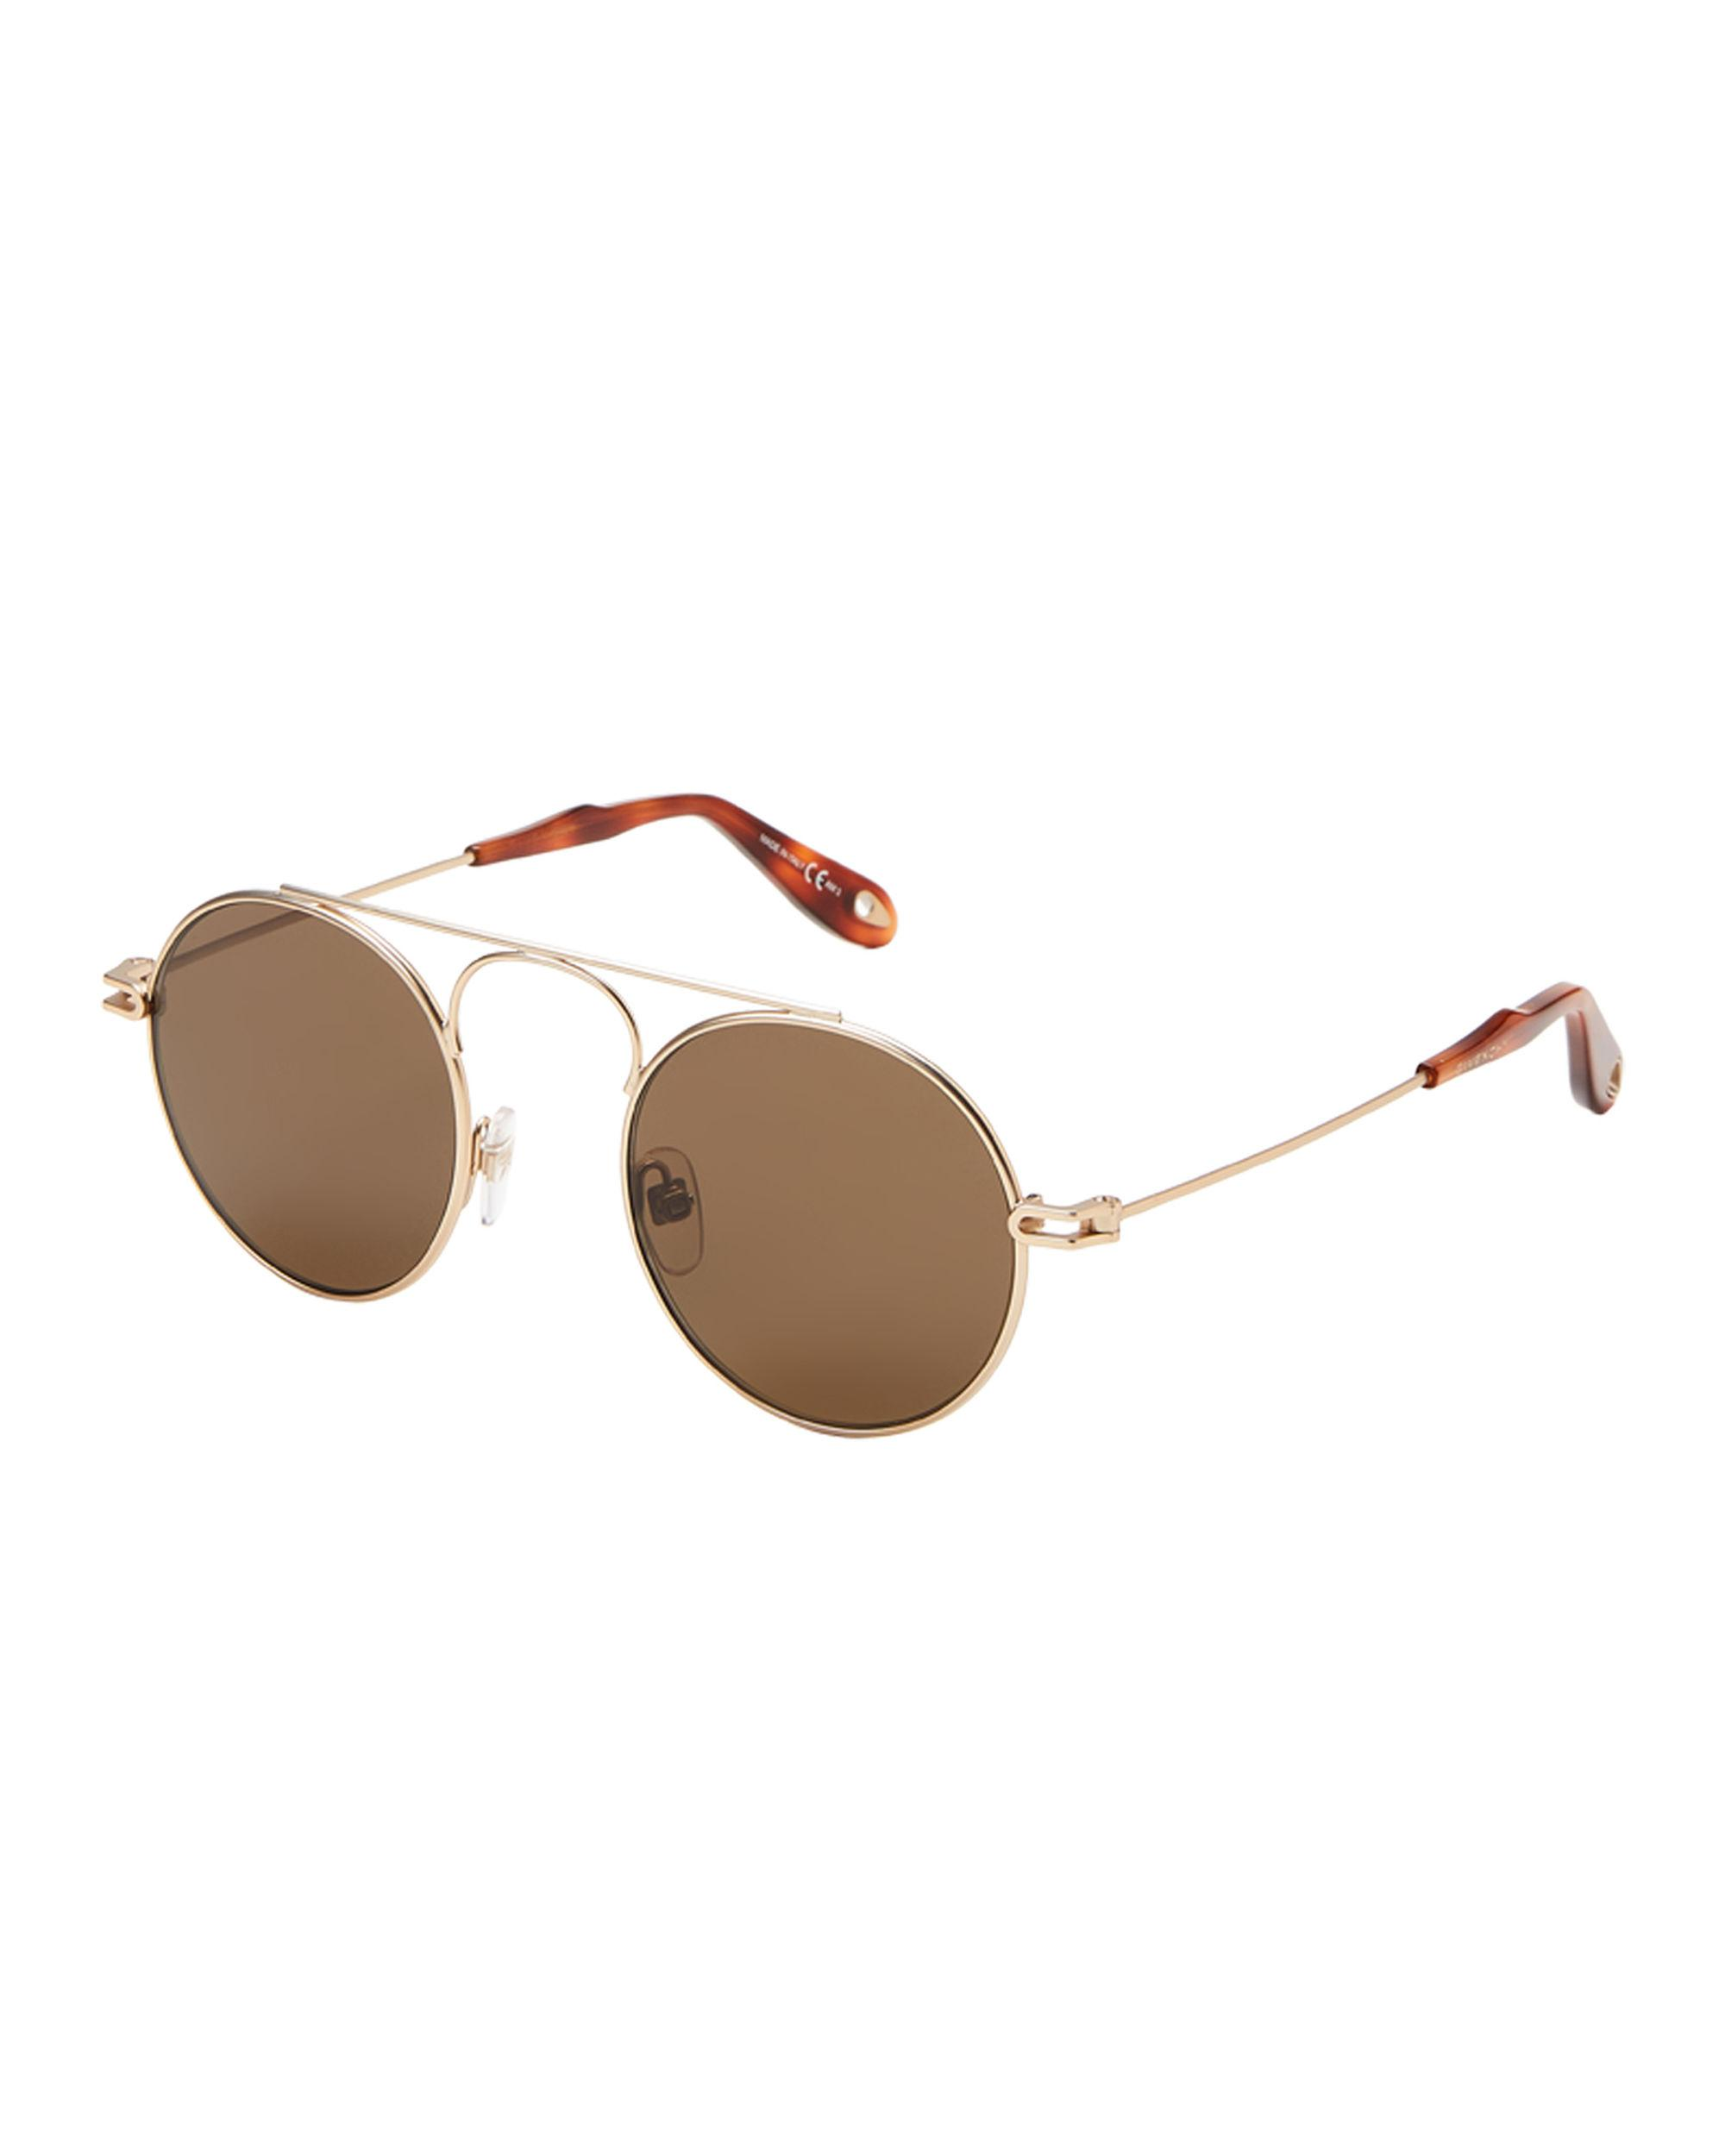 34f82bfc2db7b Lyst - Givenchy Gv7054 s Gold-tone Round Sunglasses for Men